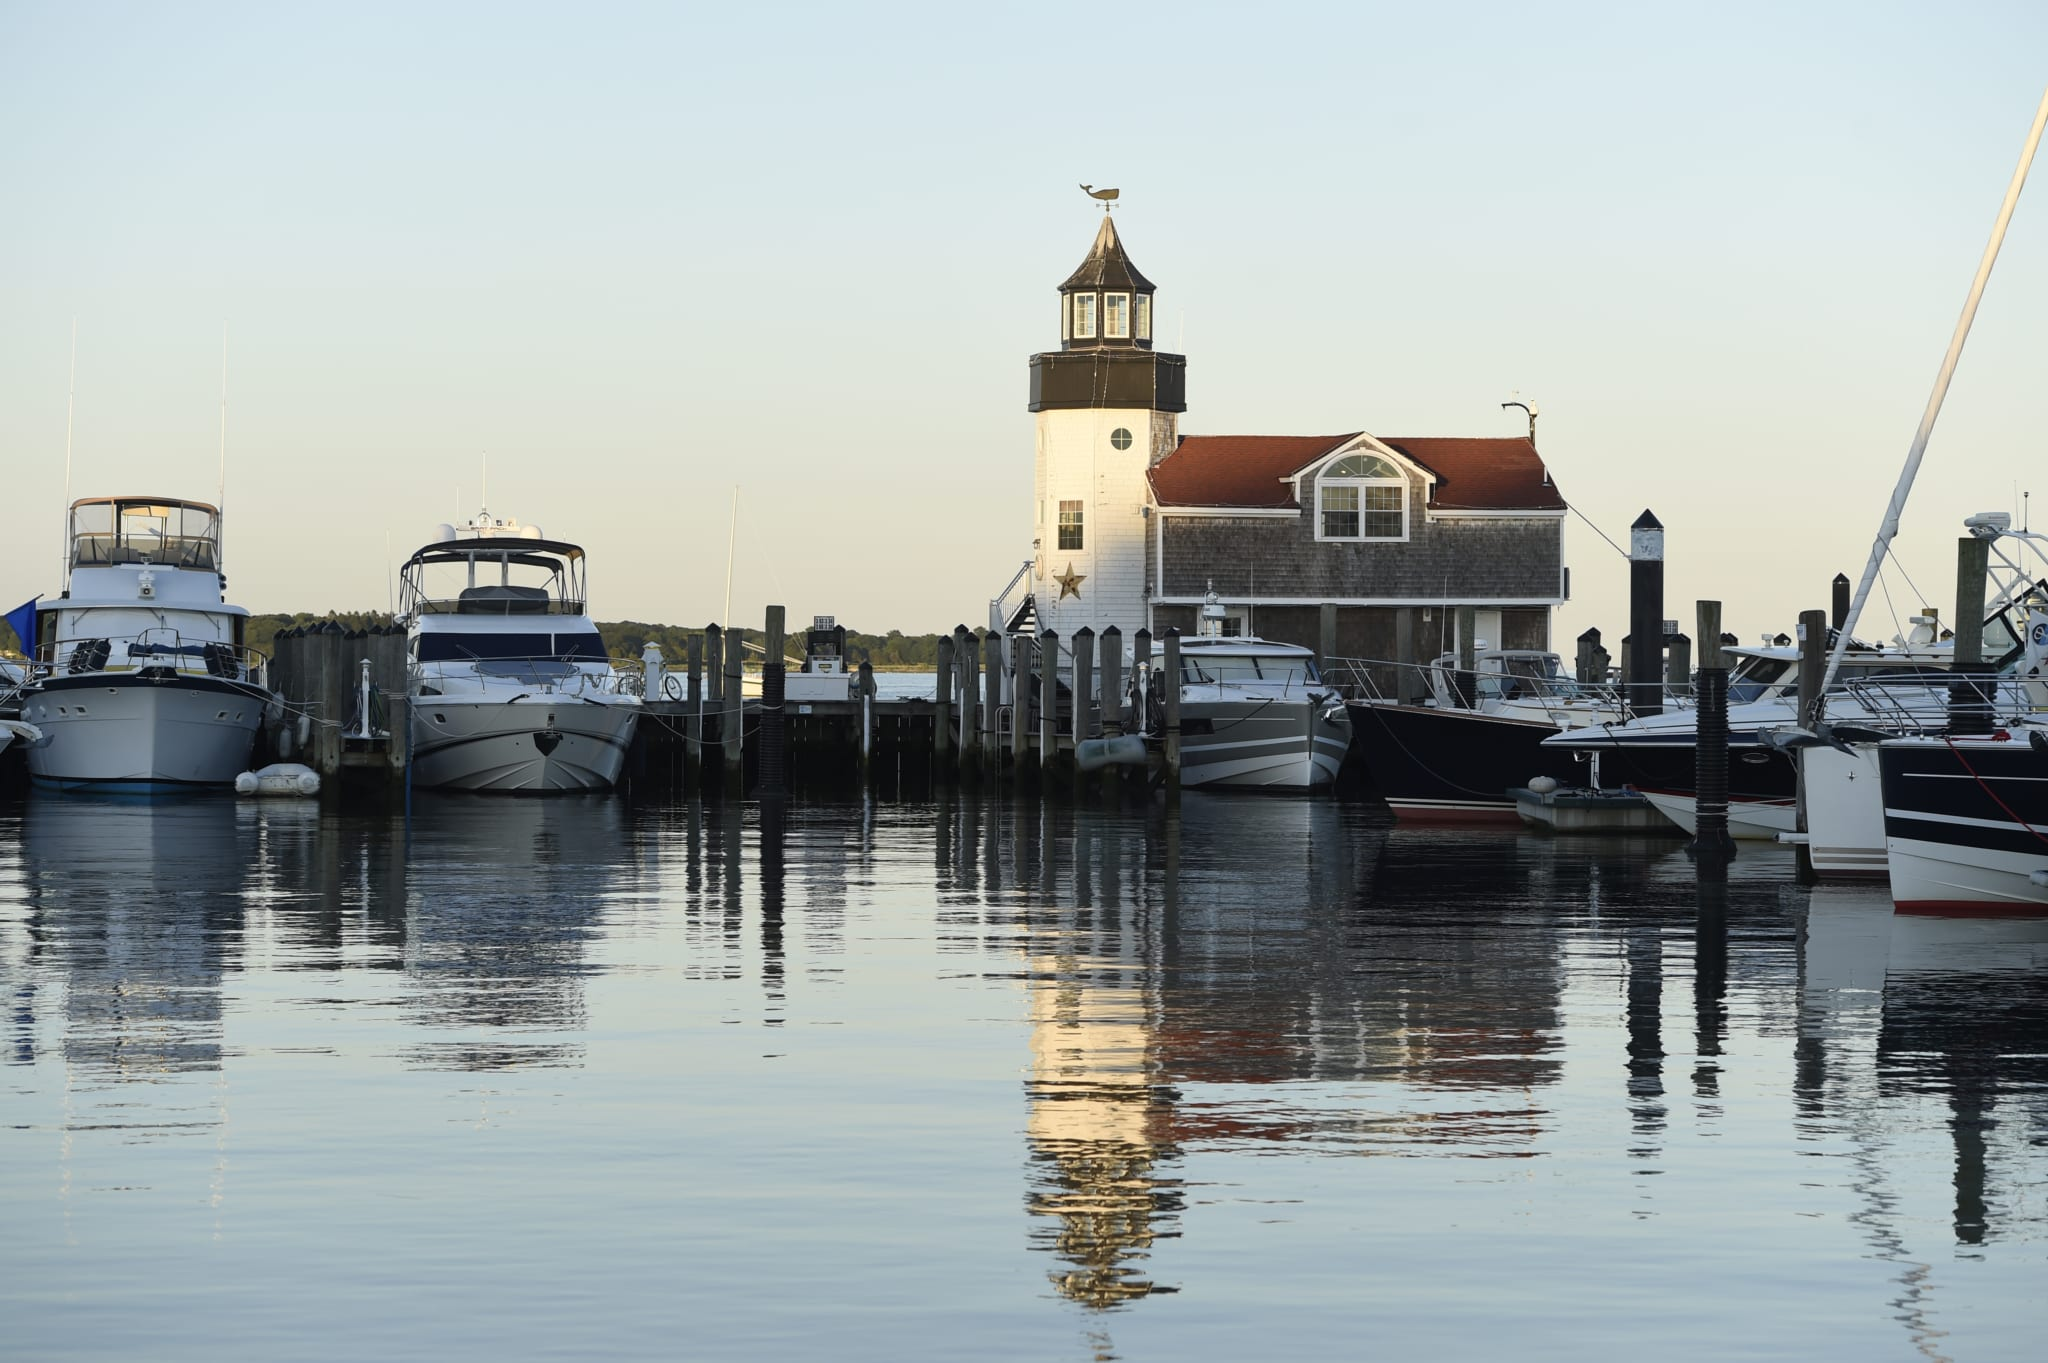 Lighthouse and boats in marina.